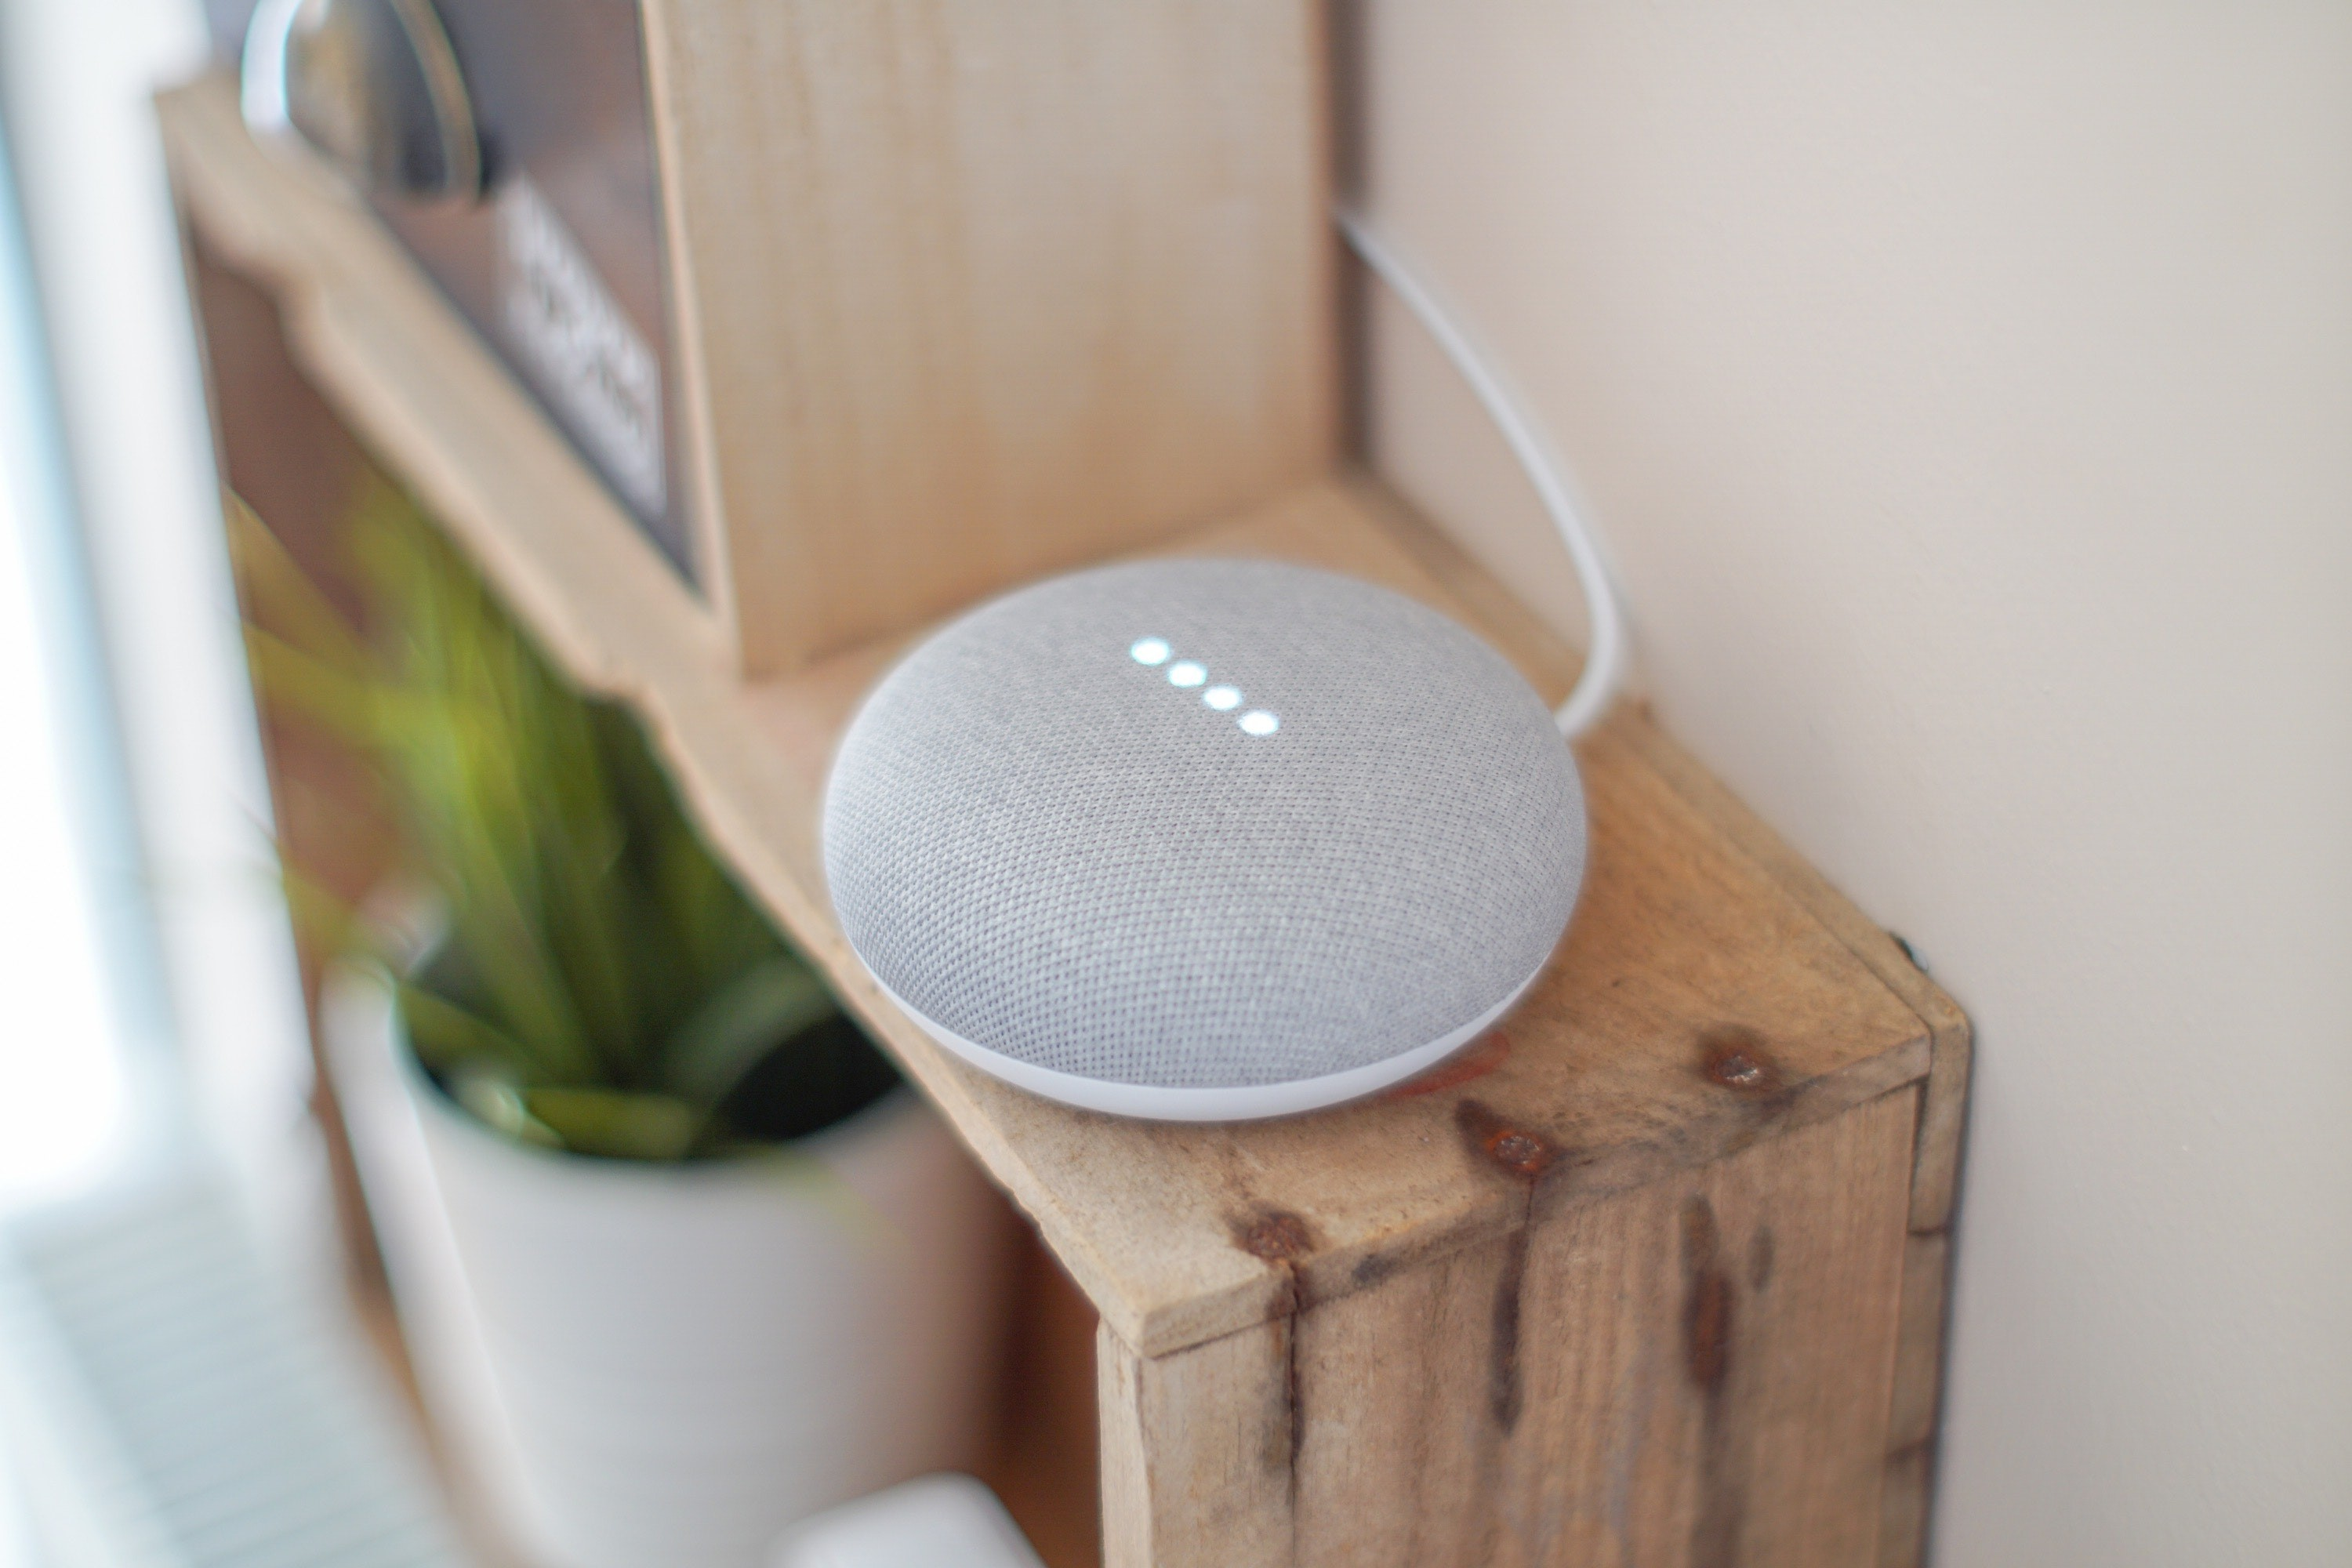 gadget-google-assistant-google-home-1072851